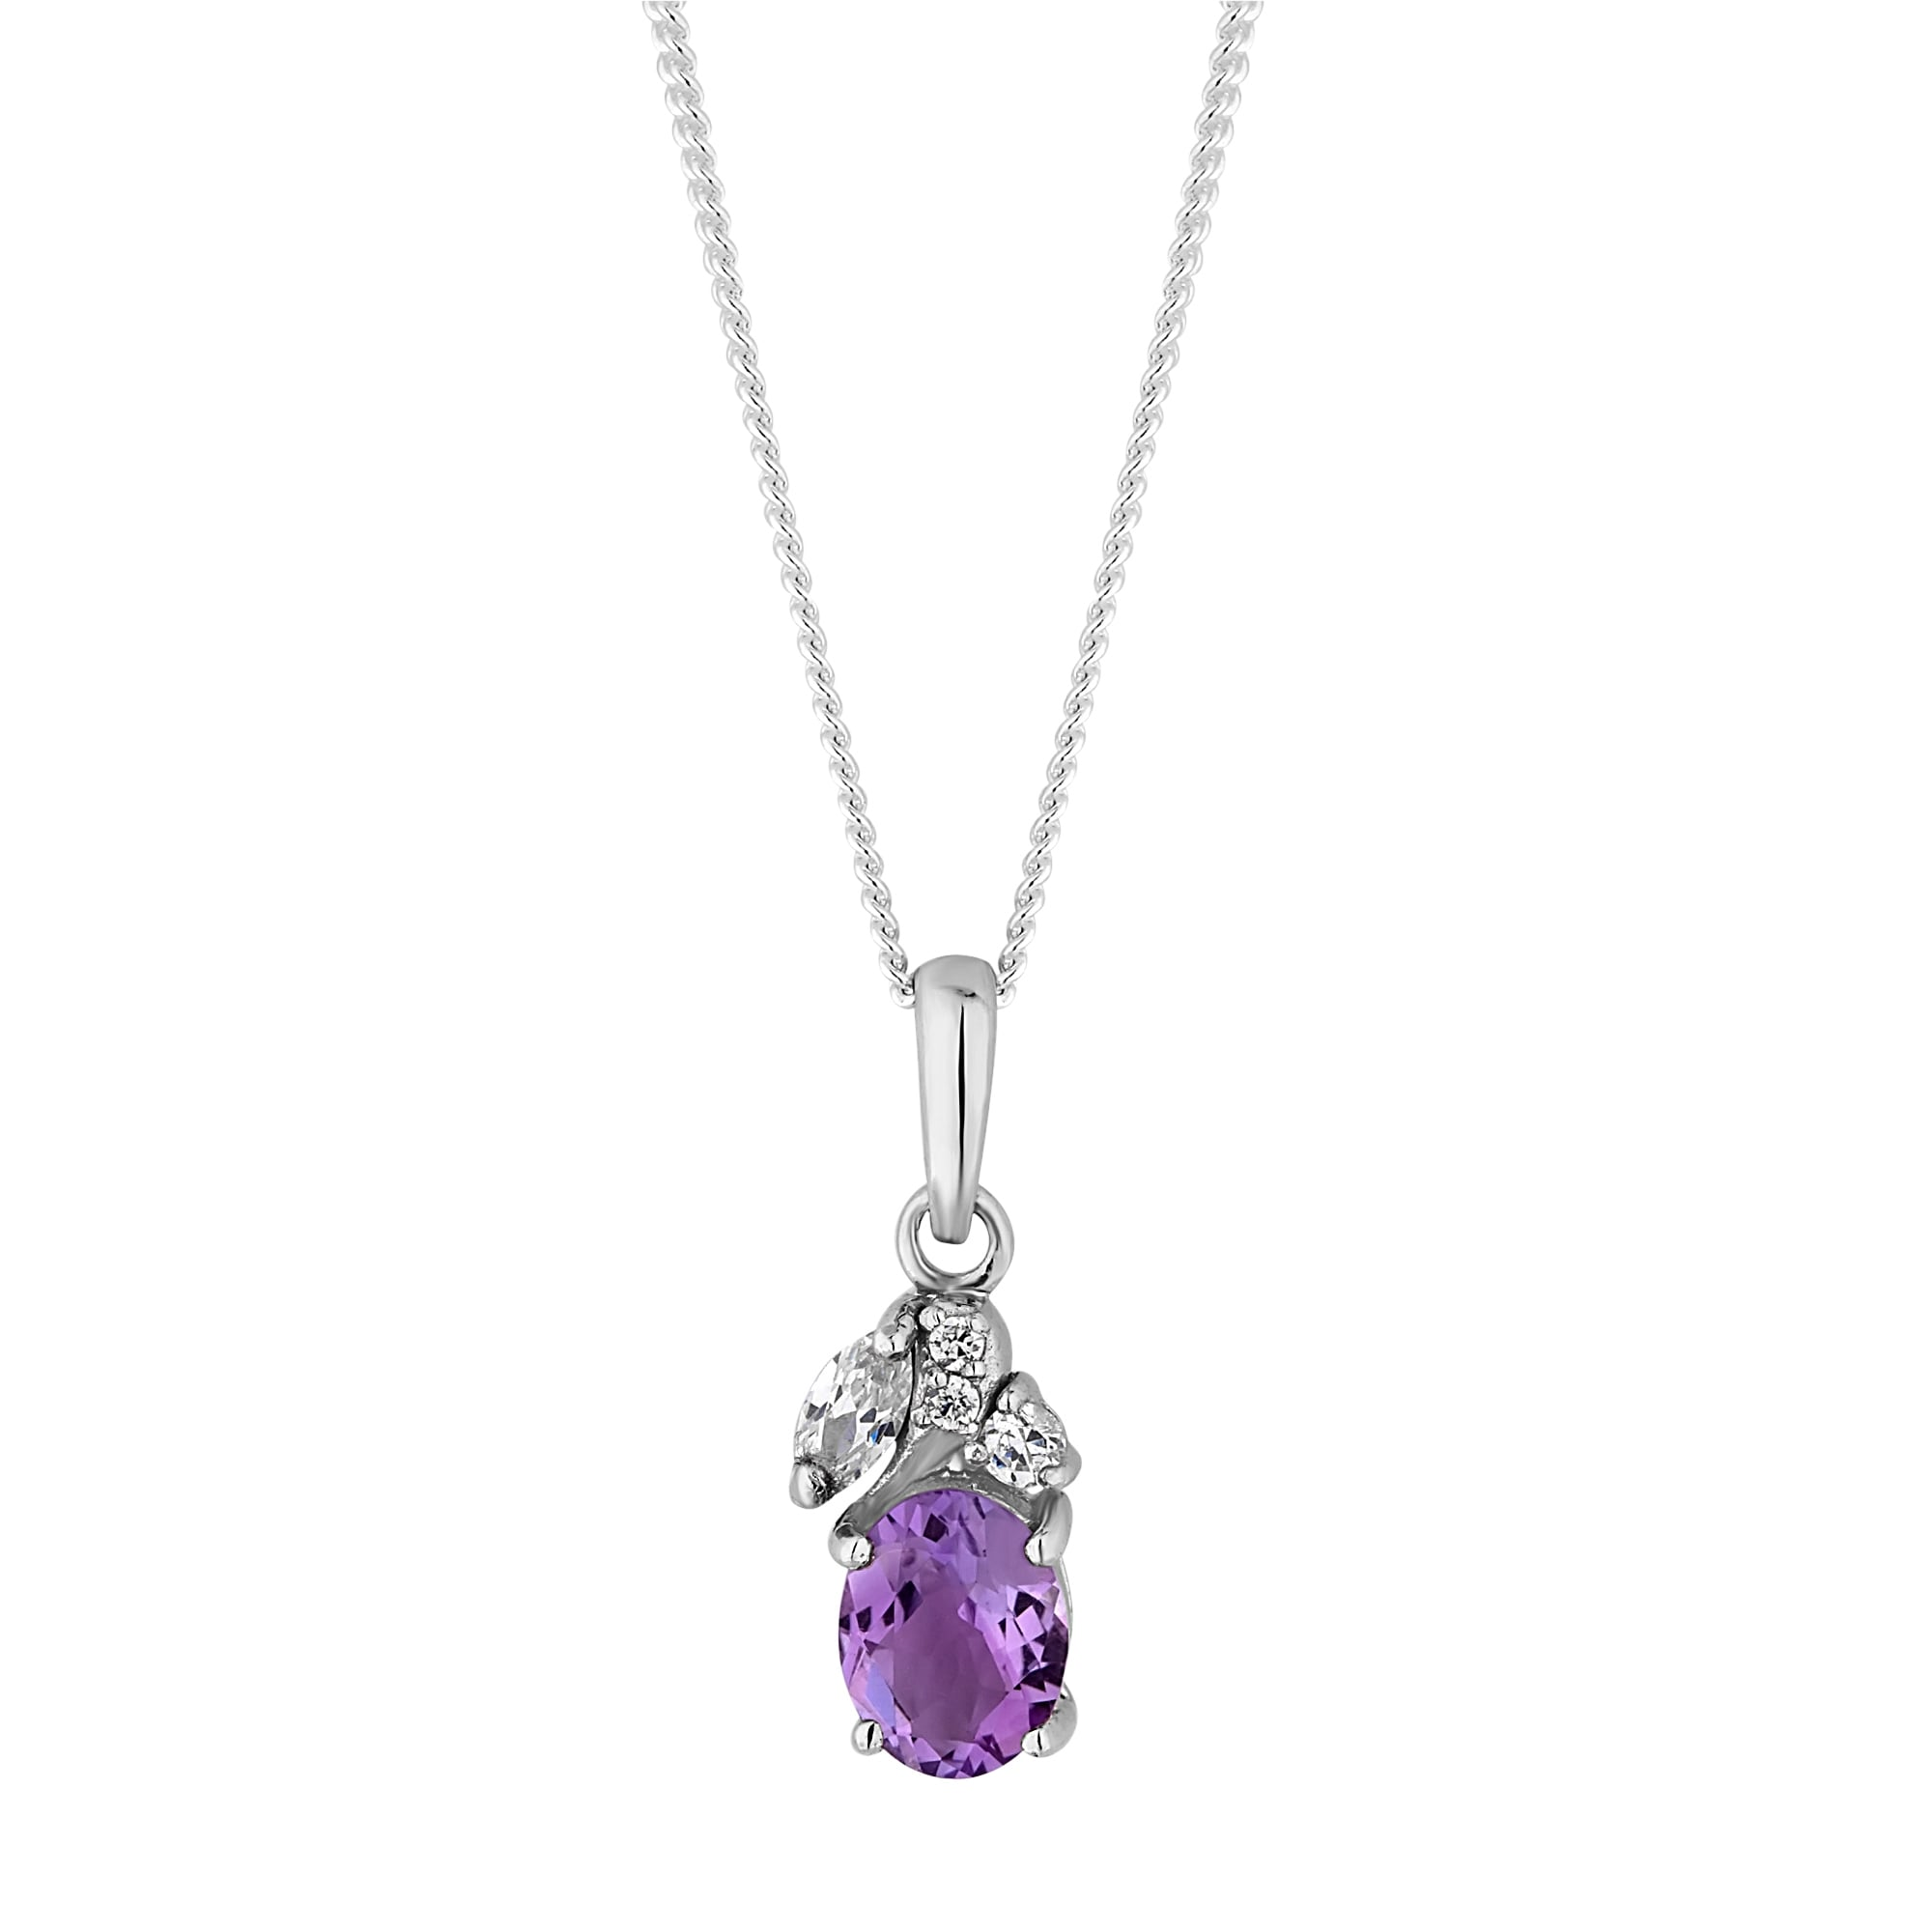 Simply silver sterling silver purple cubic zirconia cluster pendant sterling silver purple cubic zirconia cluster pendant necklace aloadofball Image collections